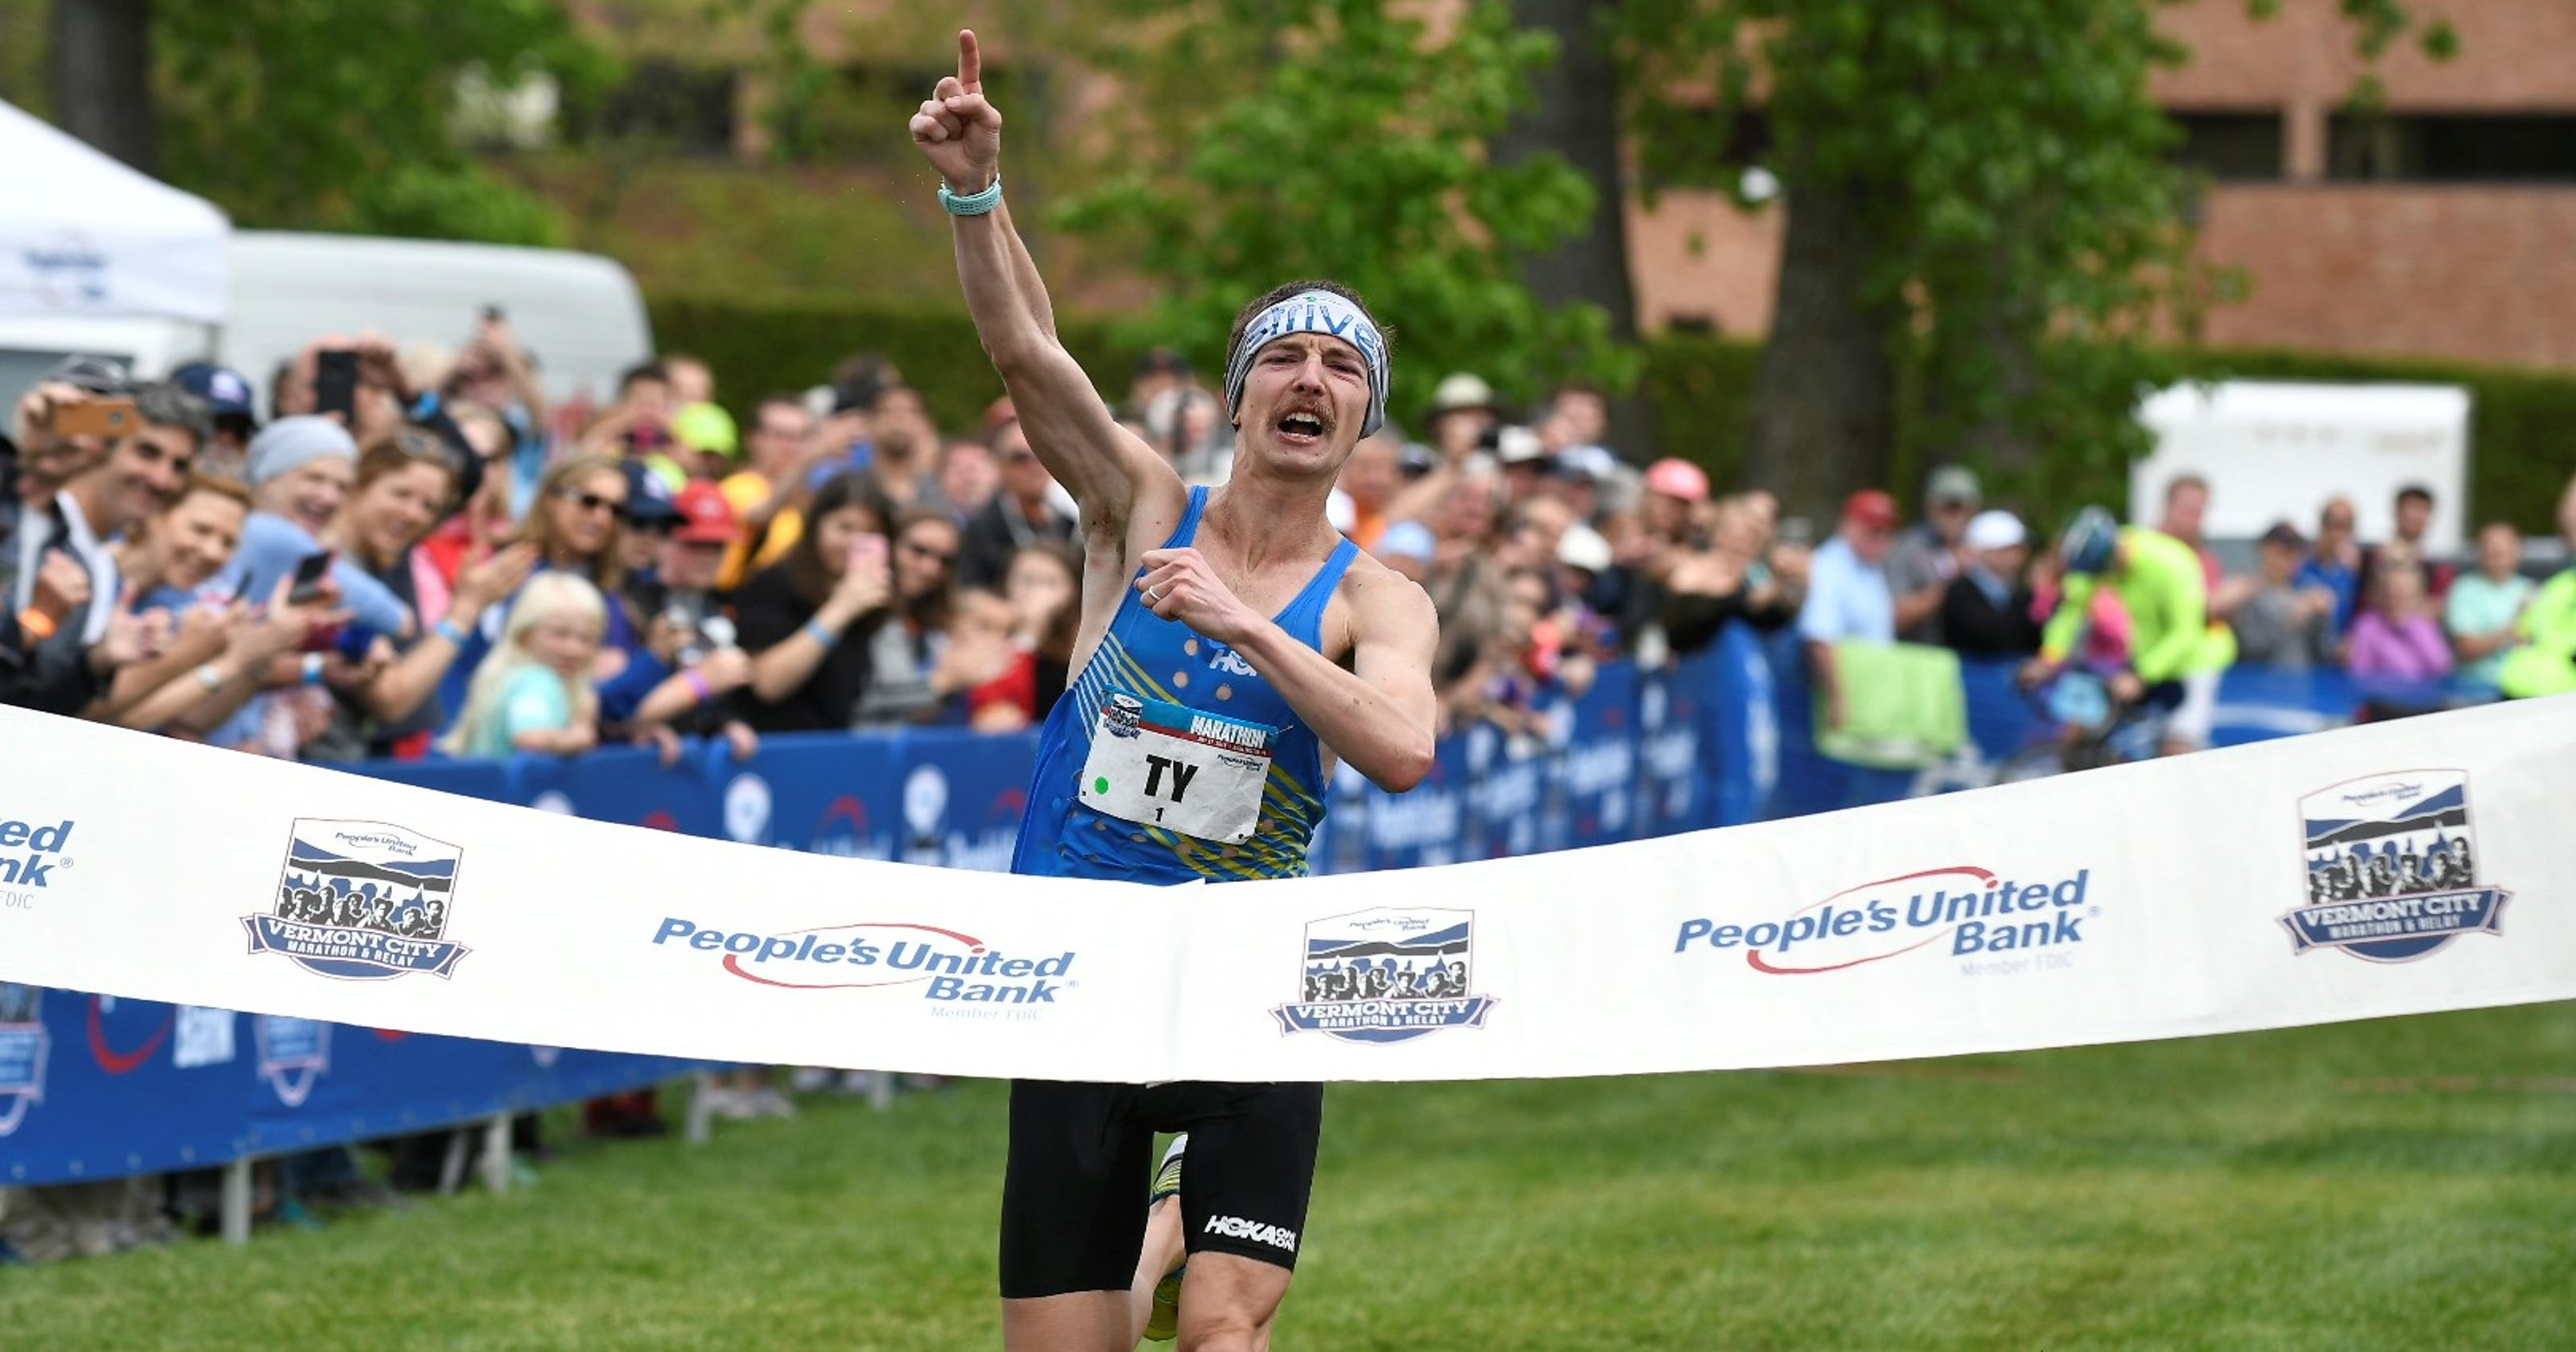 Andrews runs second-fastest time in Vermont City Marathon history